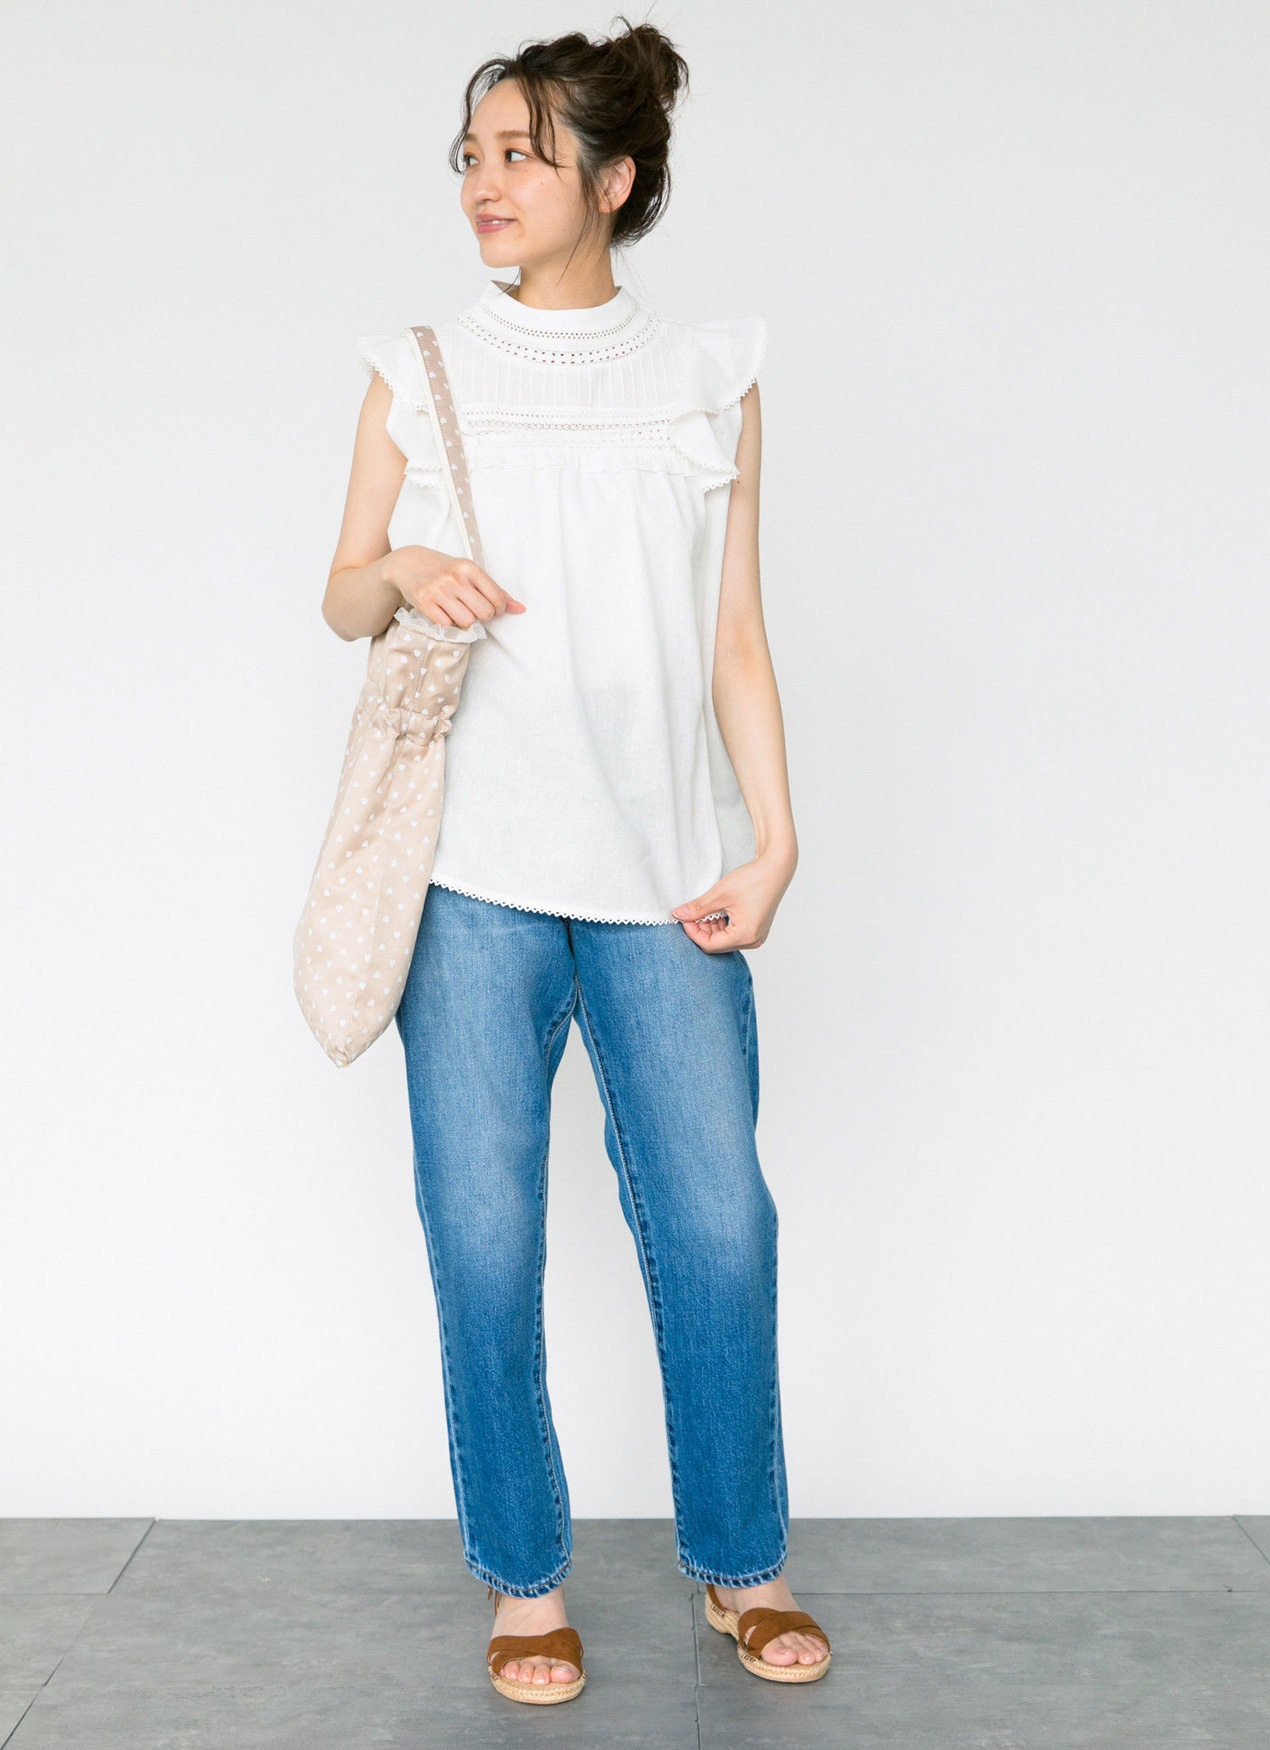 Earth, Music & Ecology Coura Top - Off White